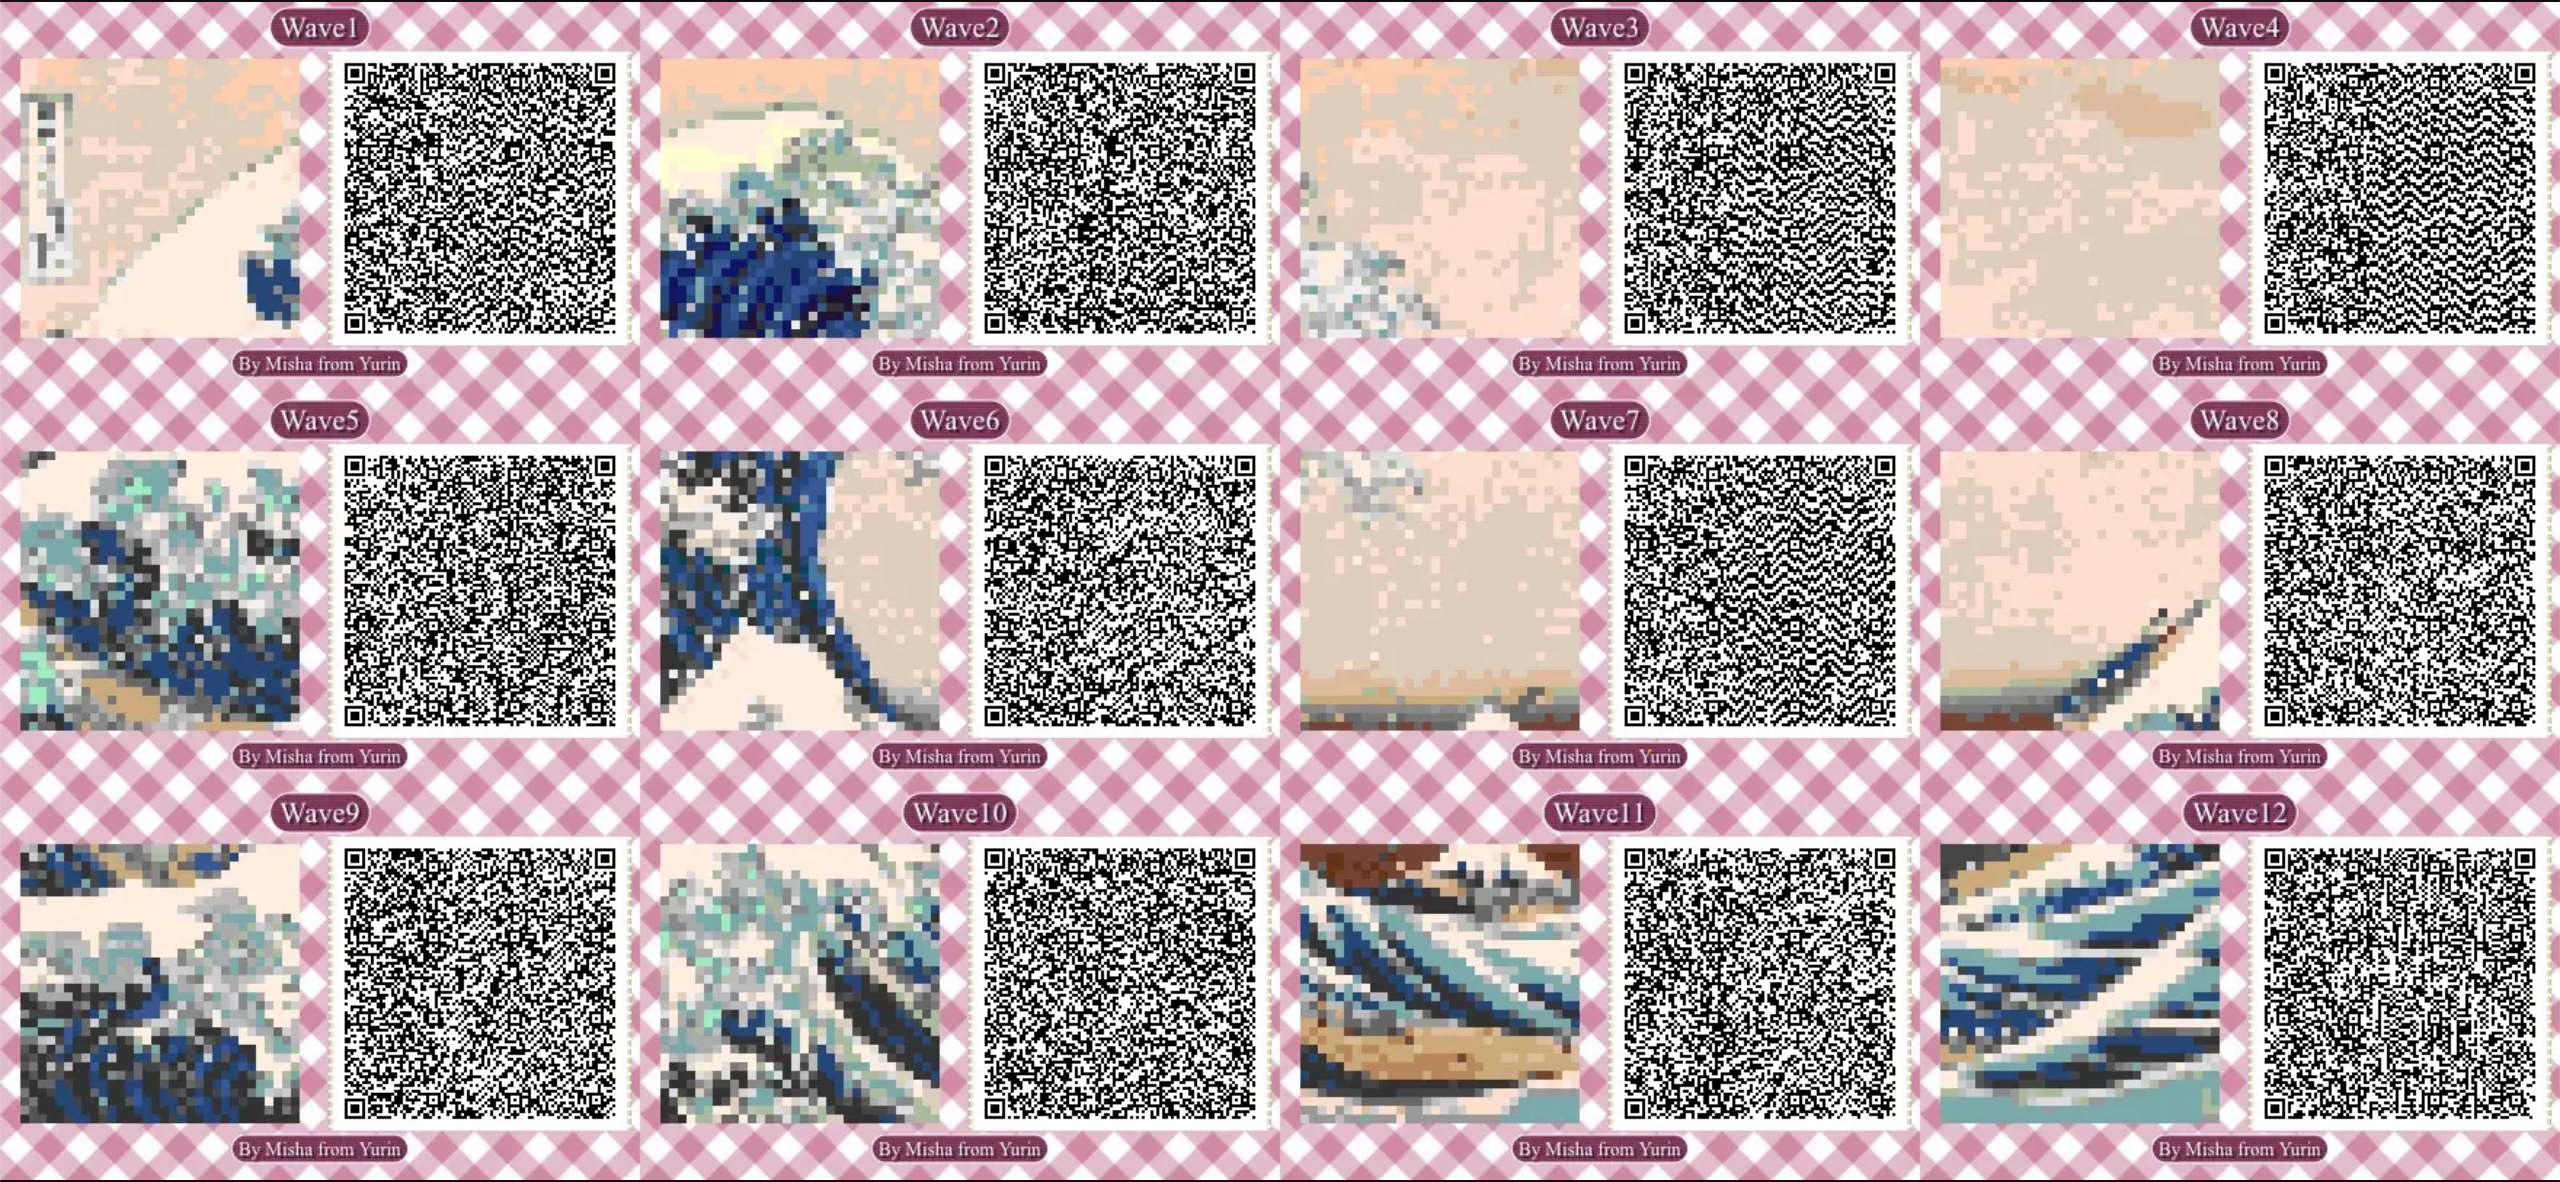 Adnh Qr Code The Great Wave Qr Codes Animal Crossing Animal Crossing Game Qr Codes Animals